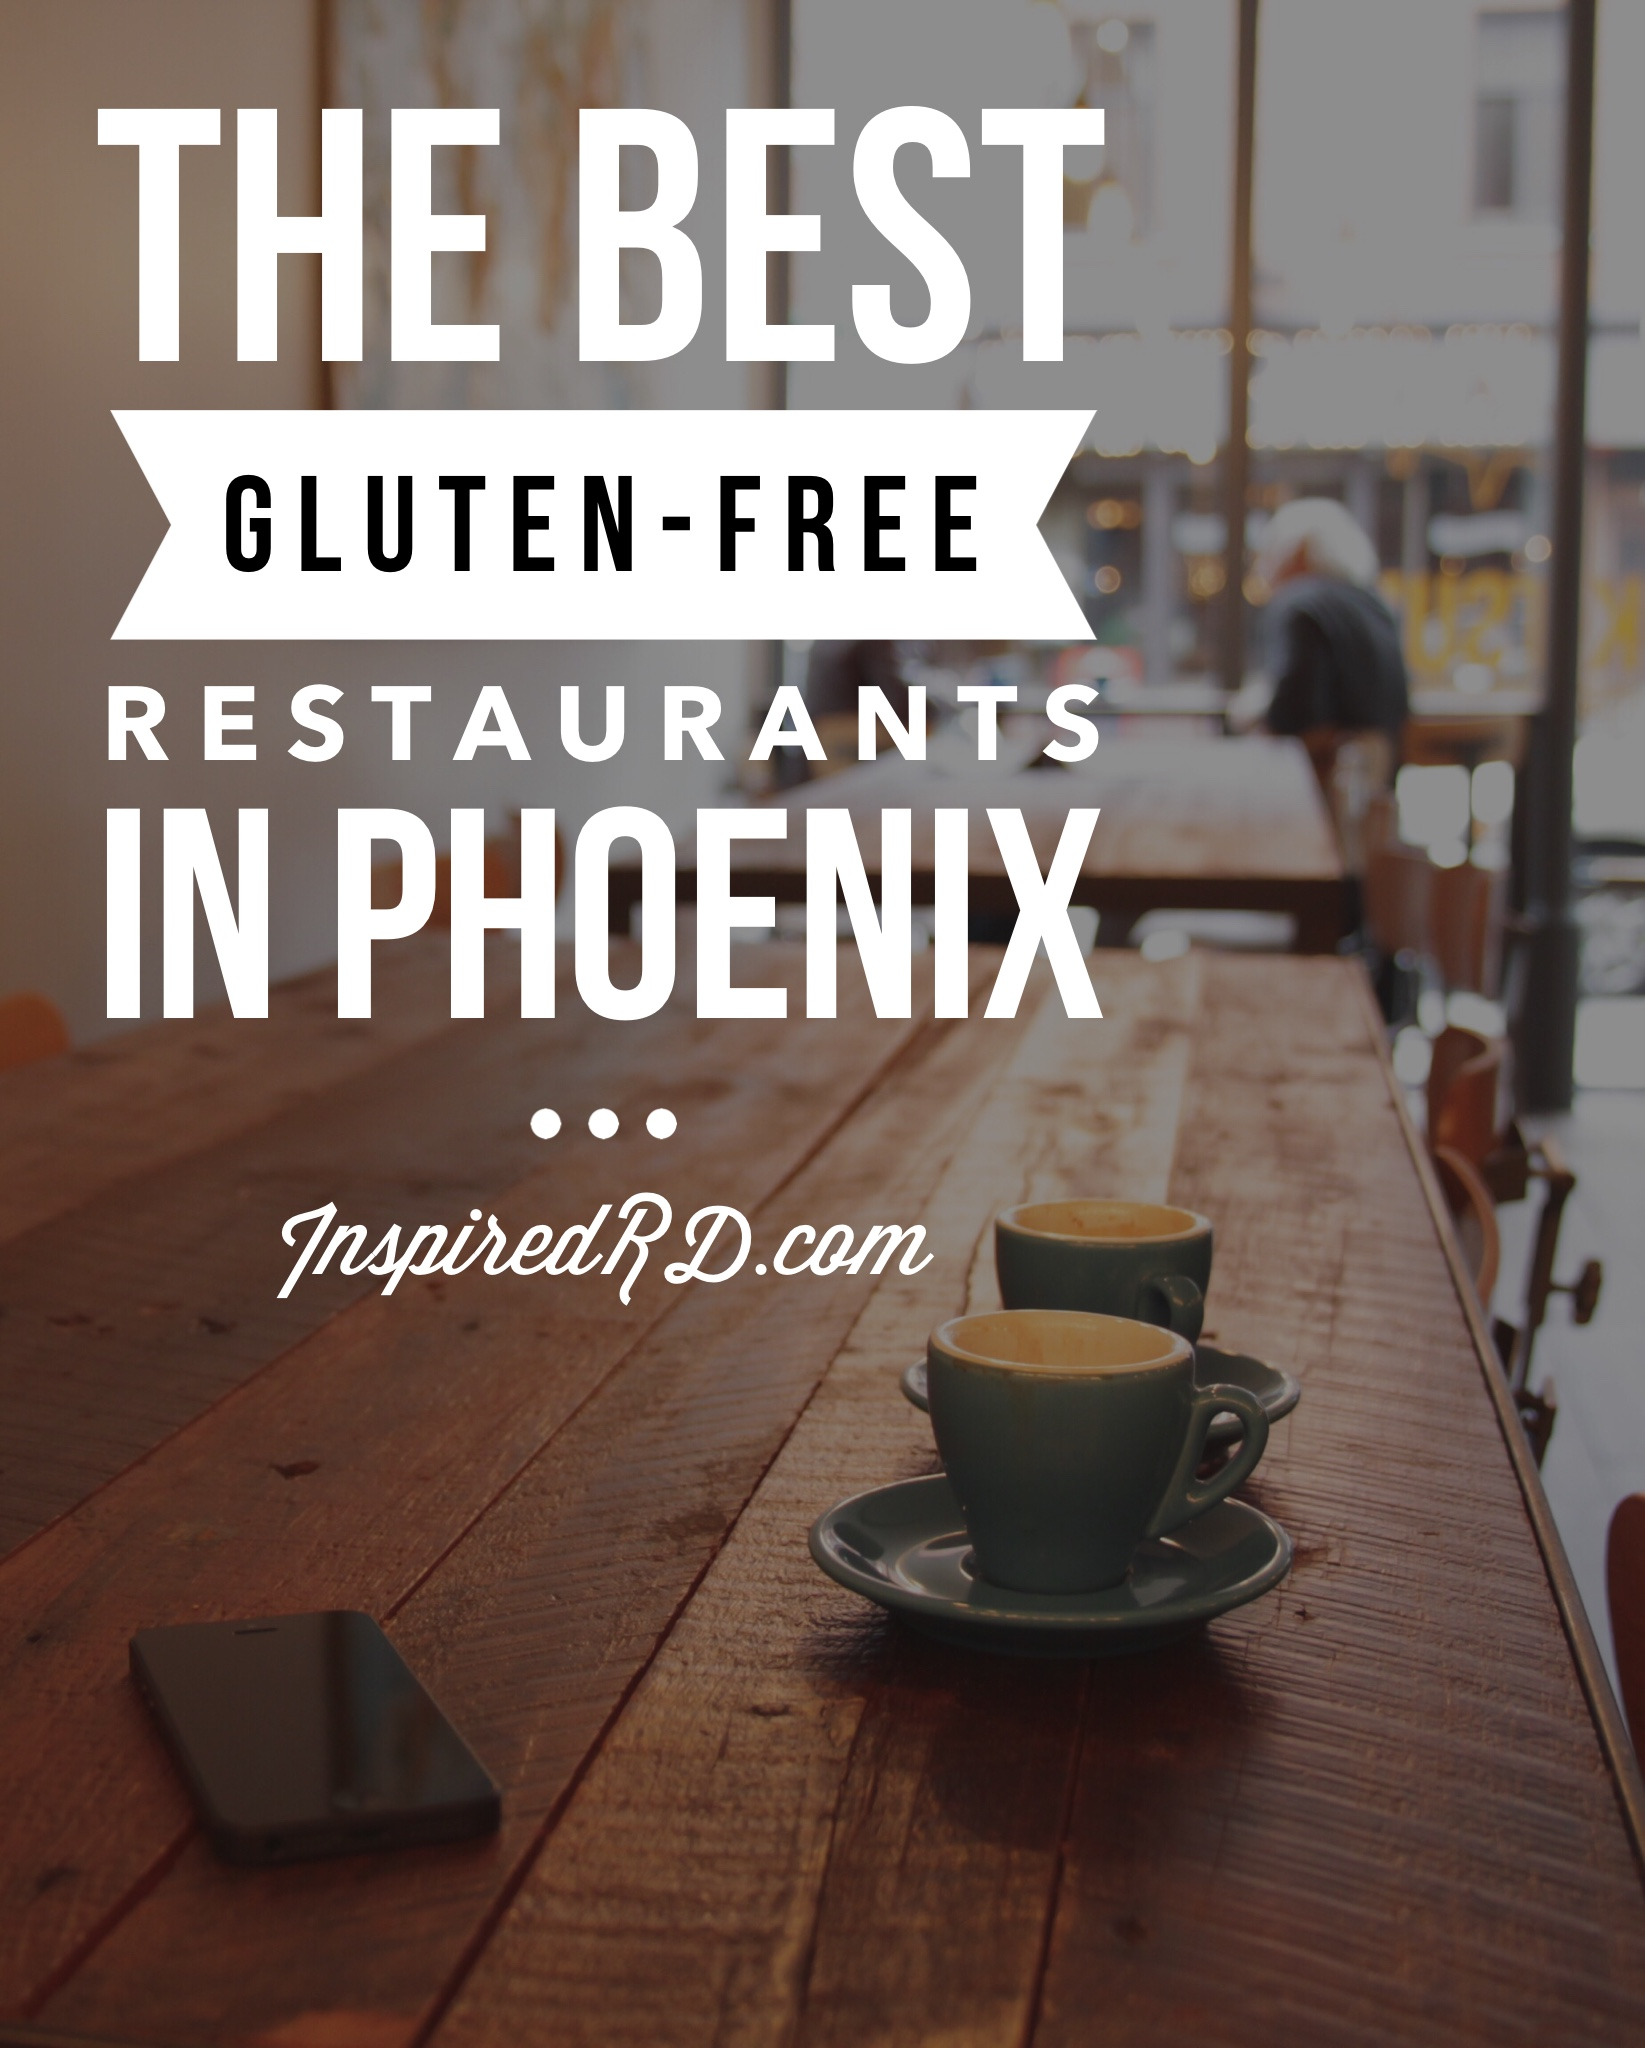 Where to eat gluten-free in Phoenix